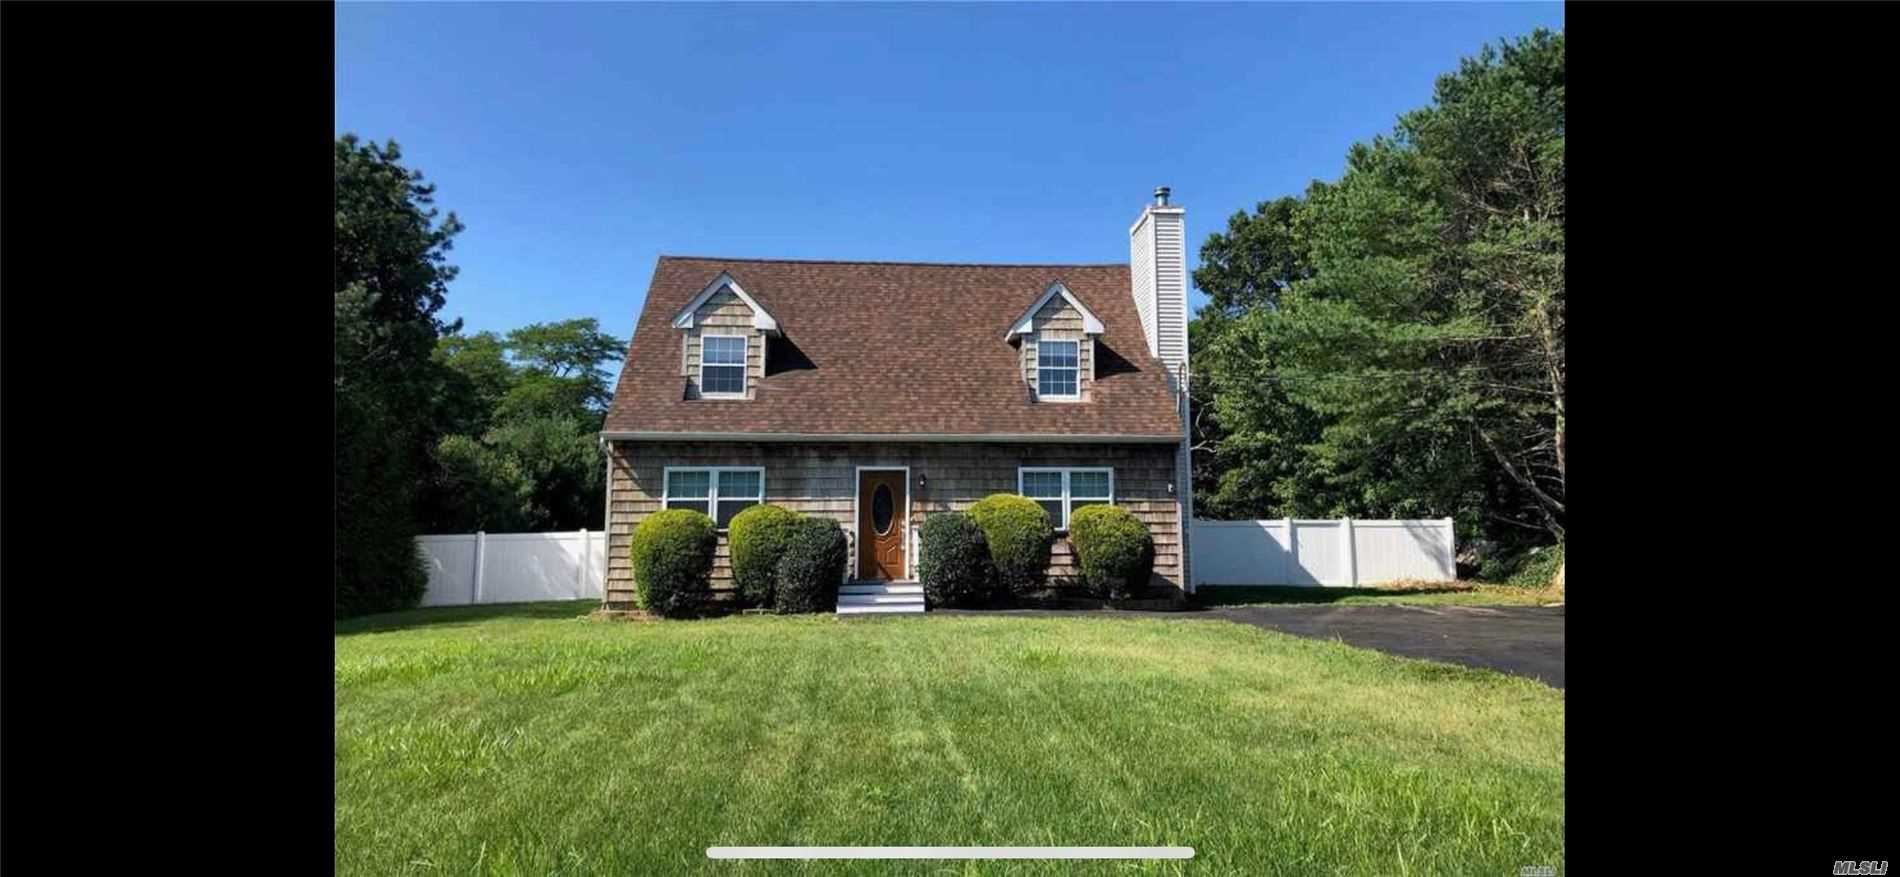 30 Lewis Road, East Quogue, NY 11942 - MLS#: 3229116